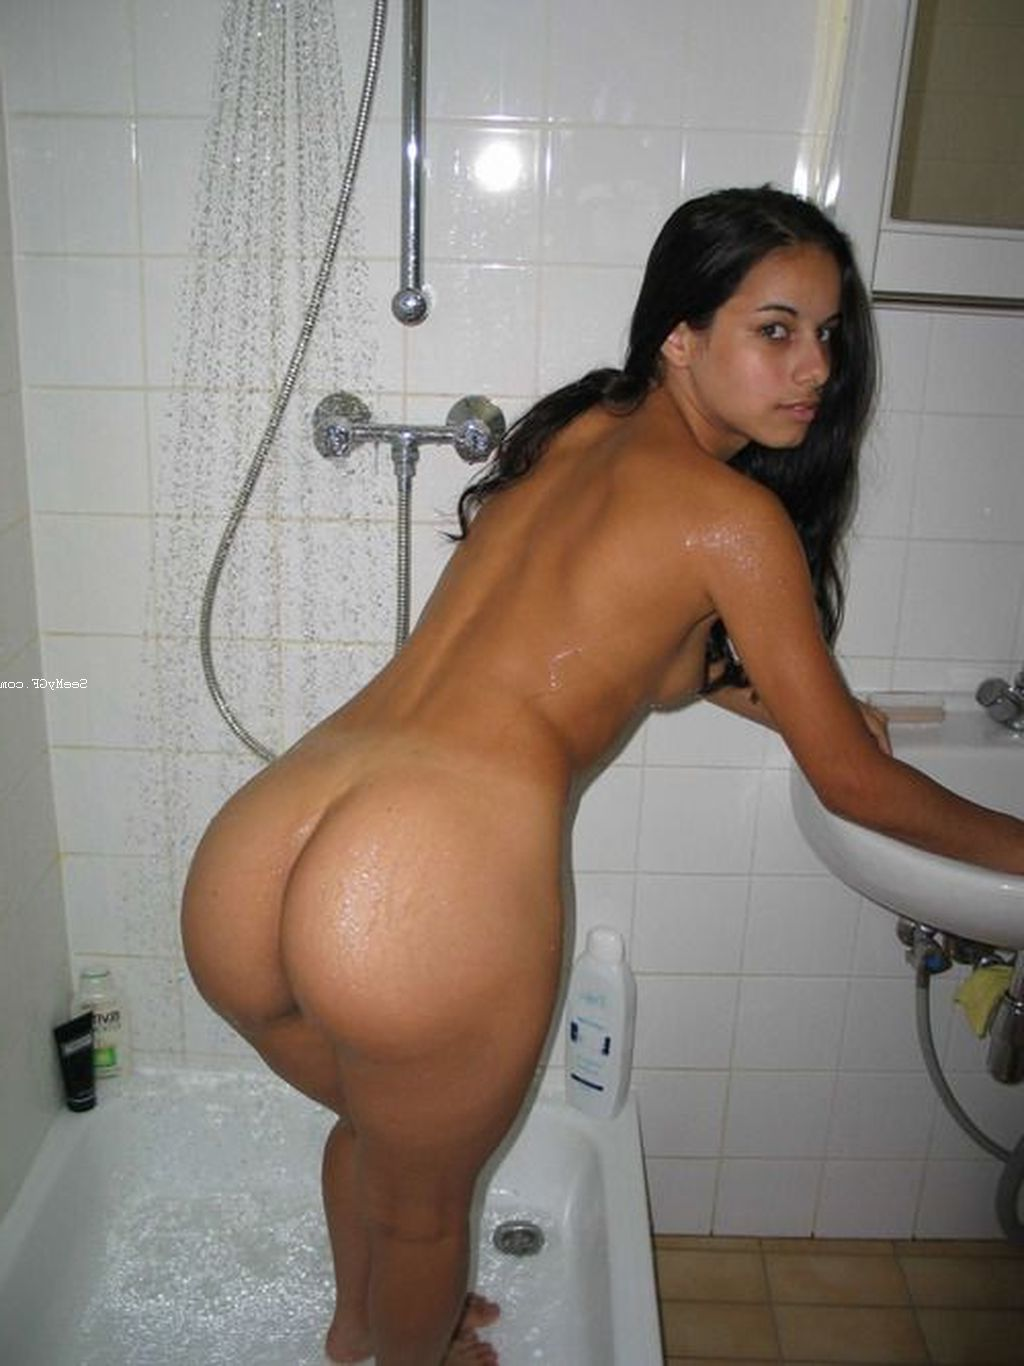 can believe that. nice figure indian girls nude photo in fucking position excellent idea. support you